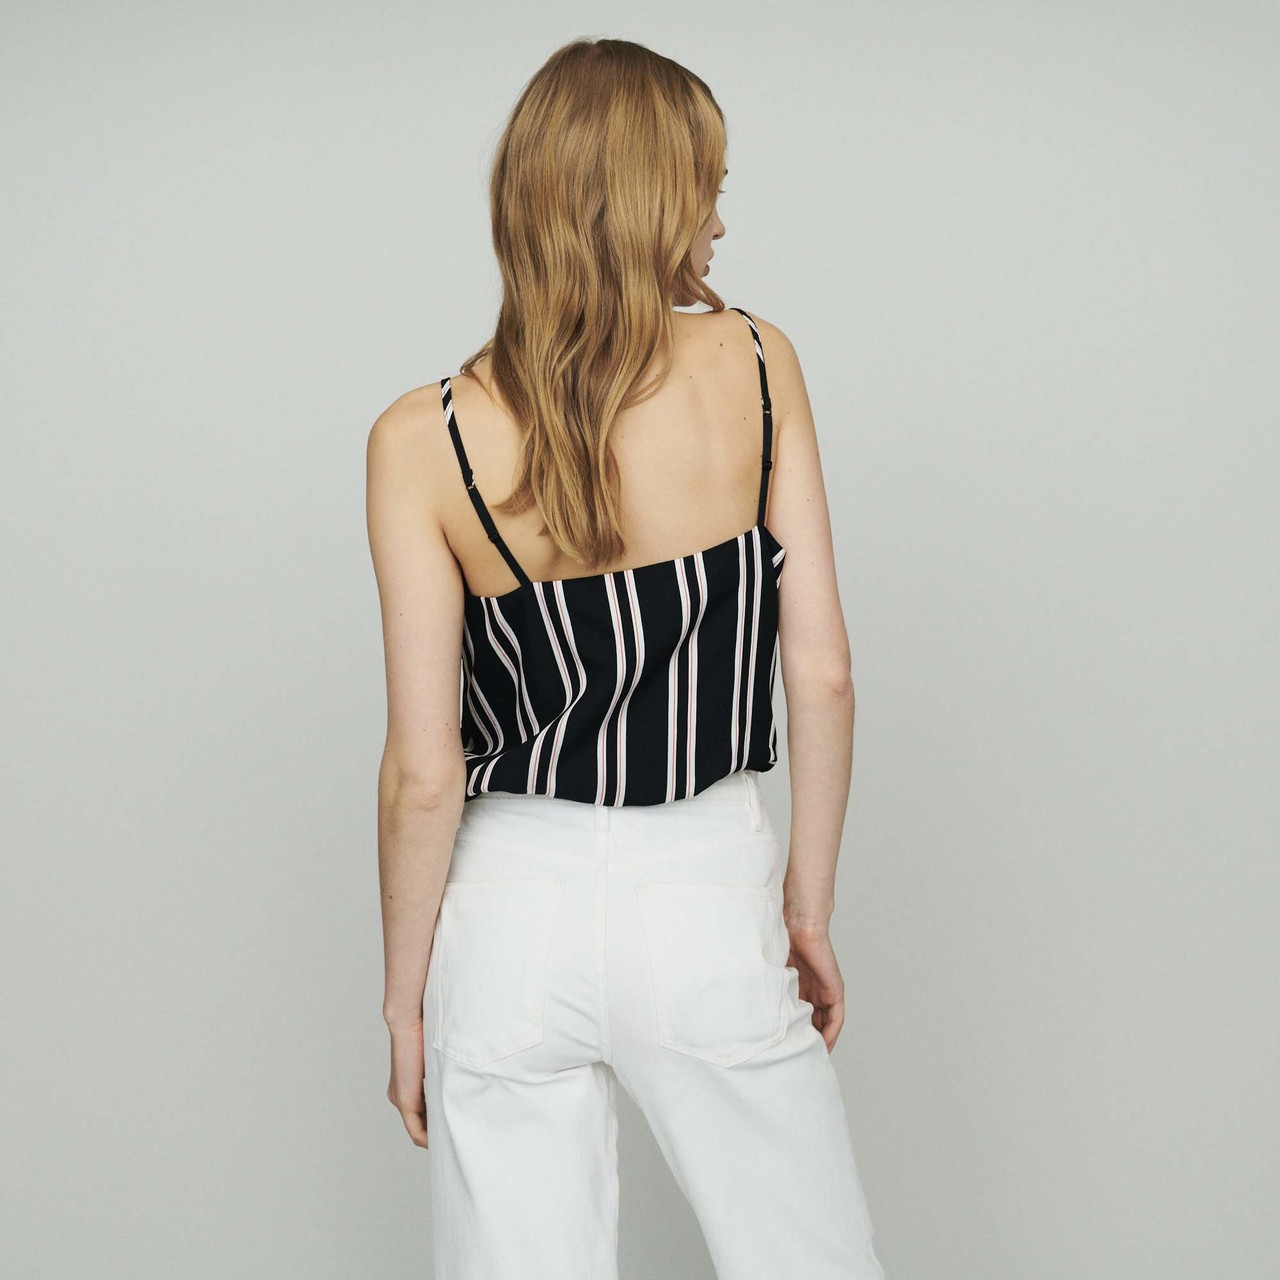 Striped Camisole With Lace - Stripe